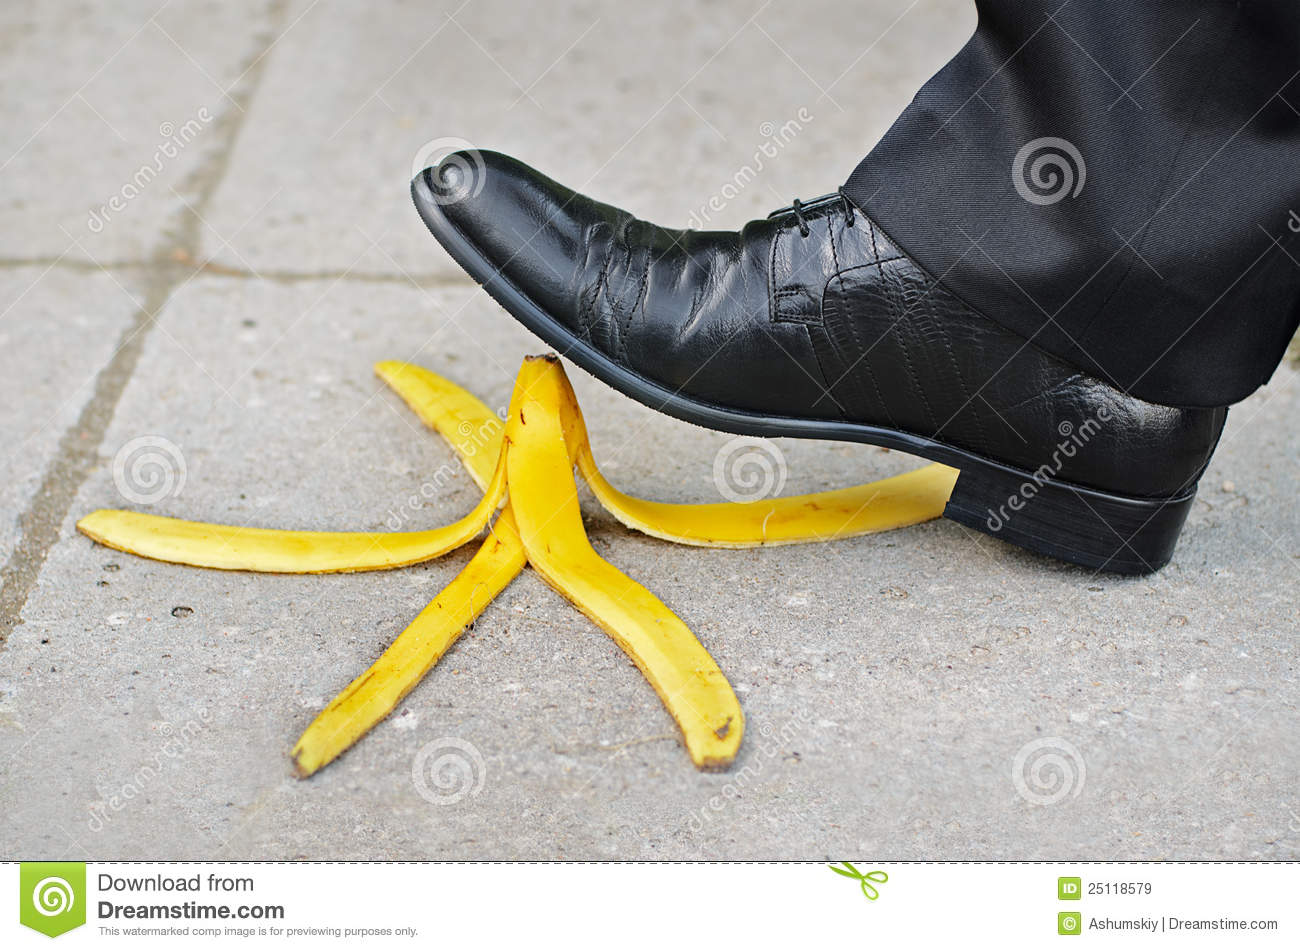 Slip And Fall On A Banana Skin Stock Image - Image: 25118579